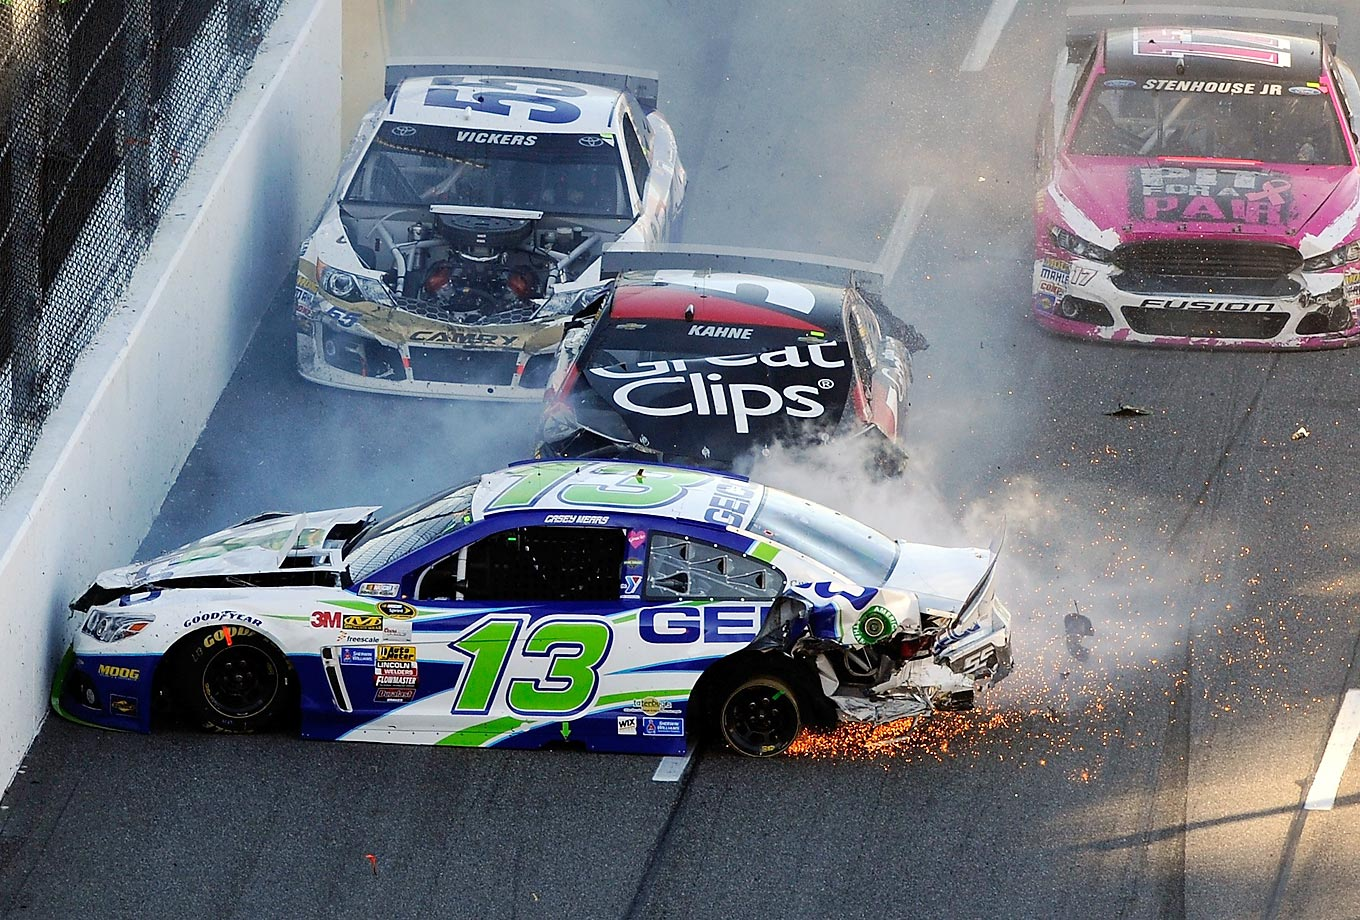 Casey Mears, Kasey Kahne and Brian Vickers crash during the NASCAR Sprint Cup Series Goody's Headache Relief Shot 500 at Martinsville Speedway.